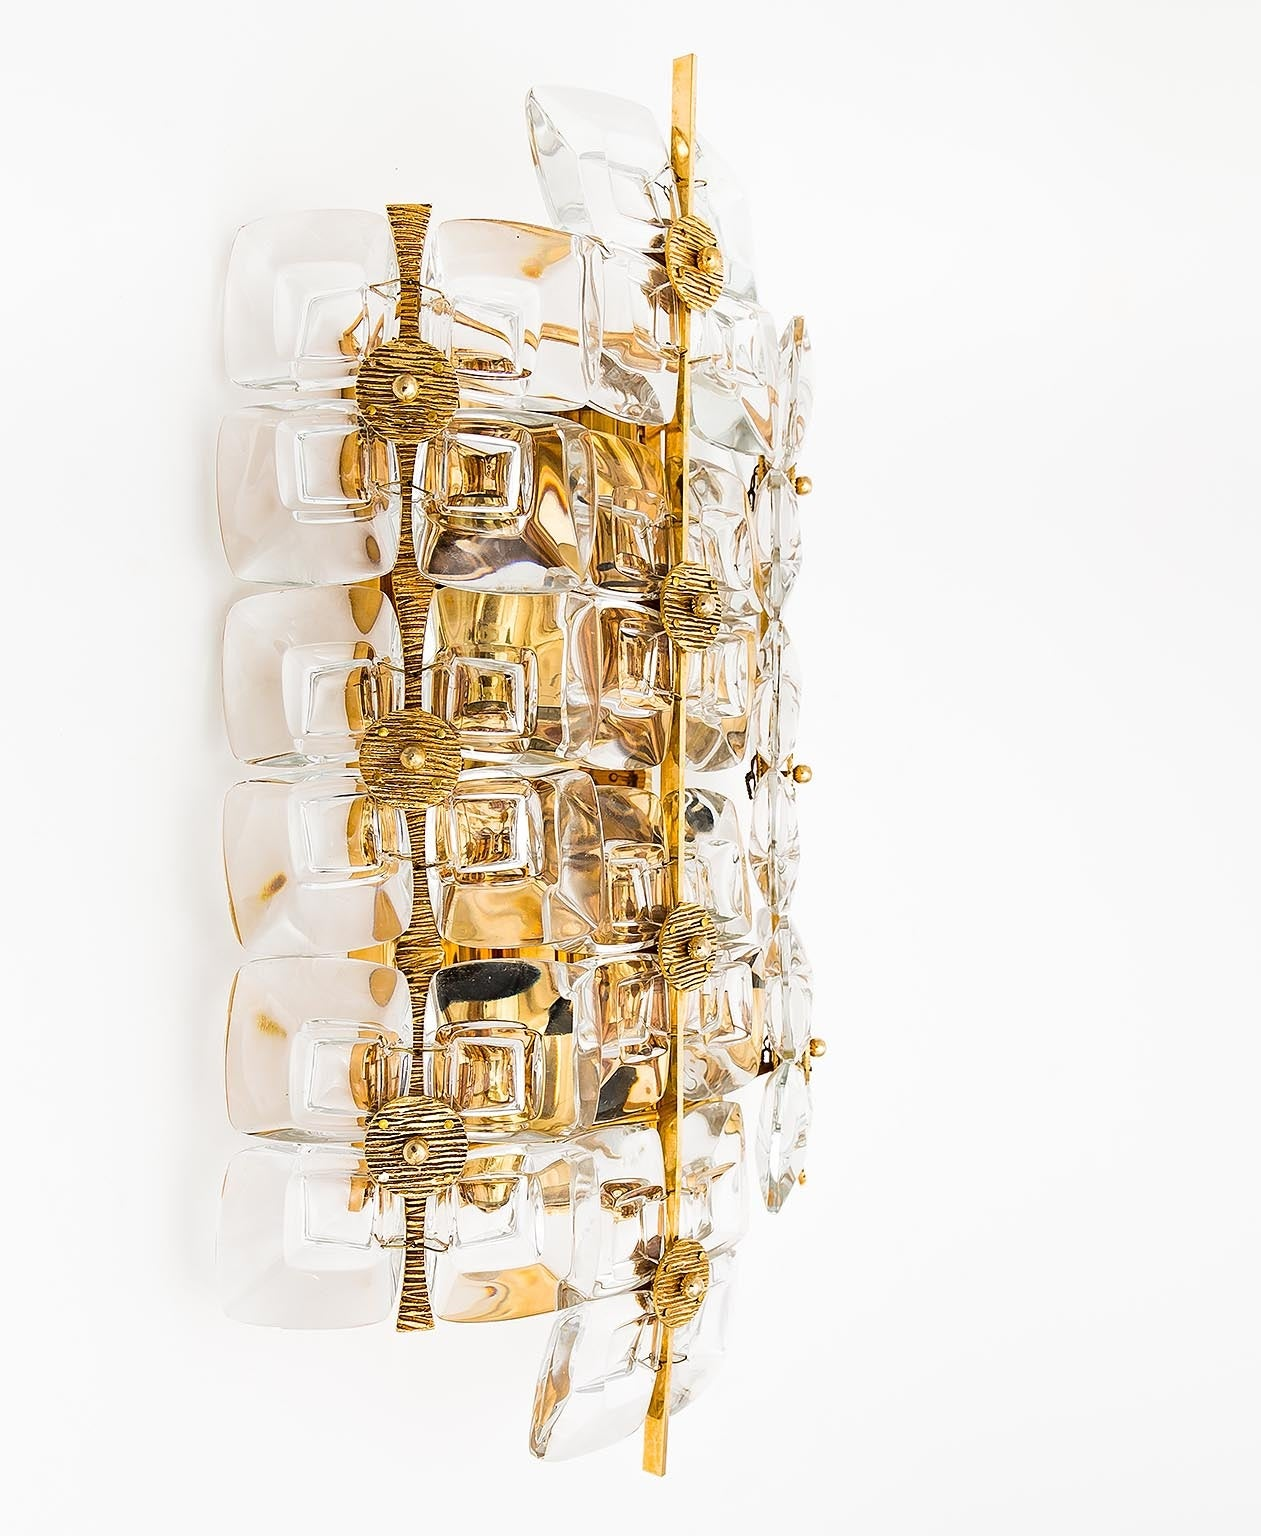 Large Gold-Plated Brass and Glass Brutalist Wall Light Sconce by Palwa, 1960s For Sale at 1stdibs